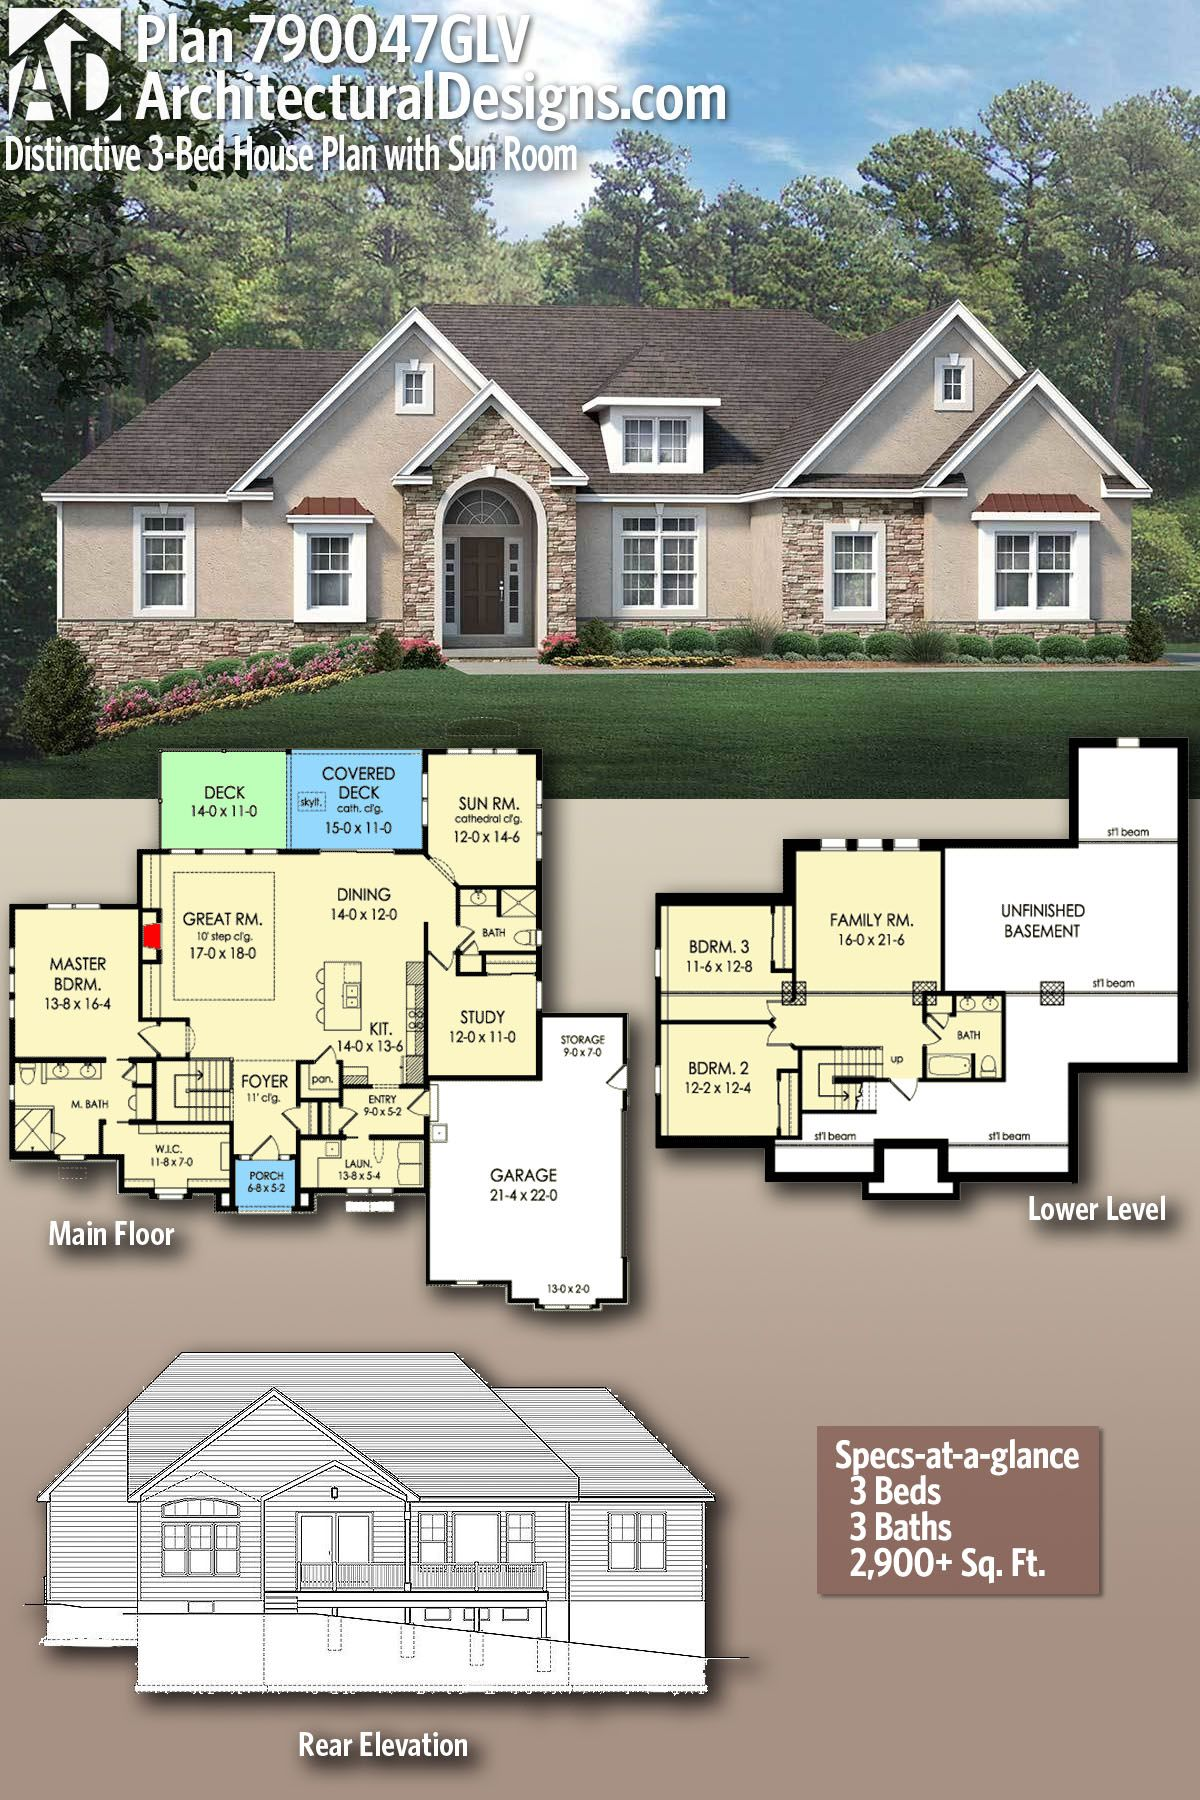 Architectural Designs House Plan 790047GLV gives you